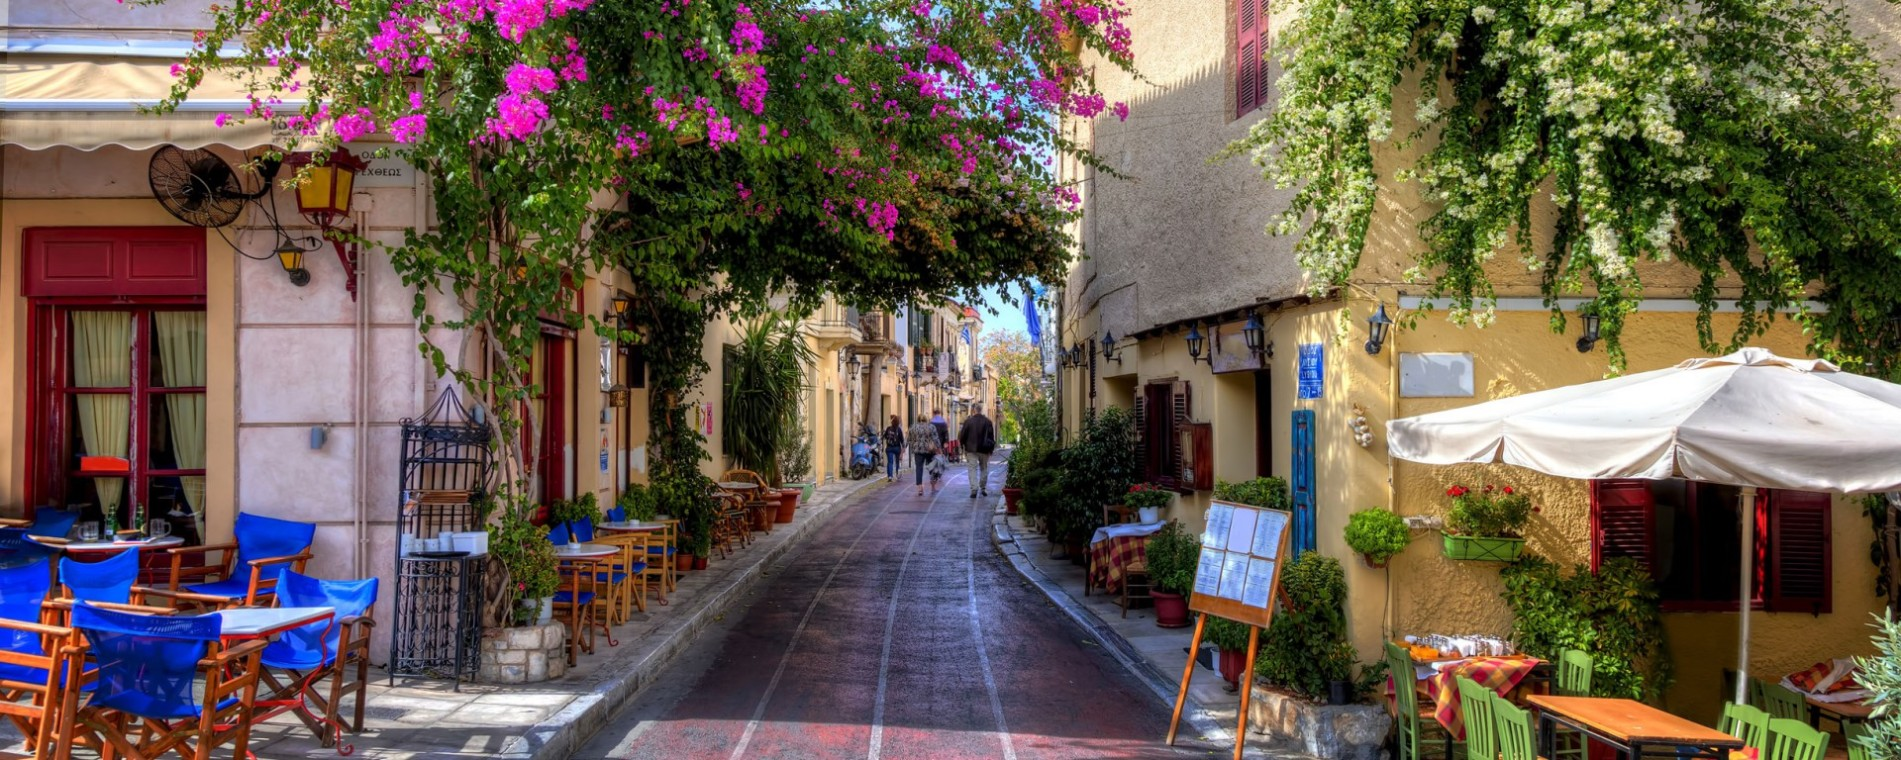 Plaka, the old city quarter